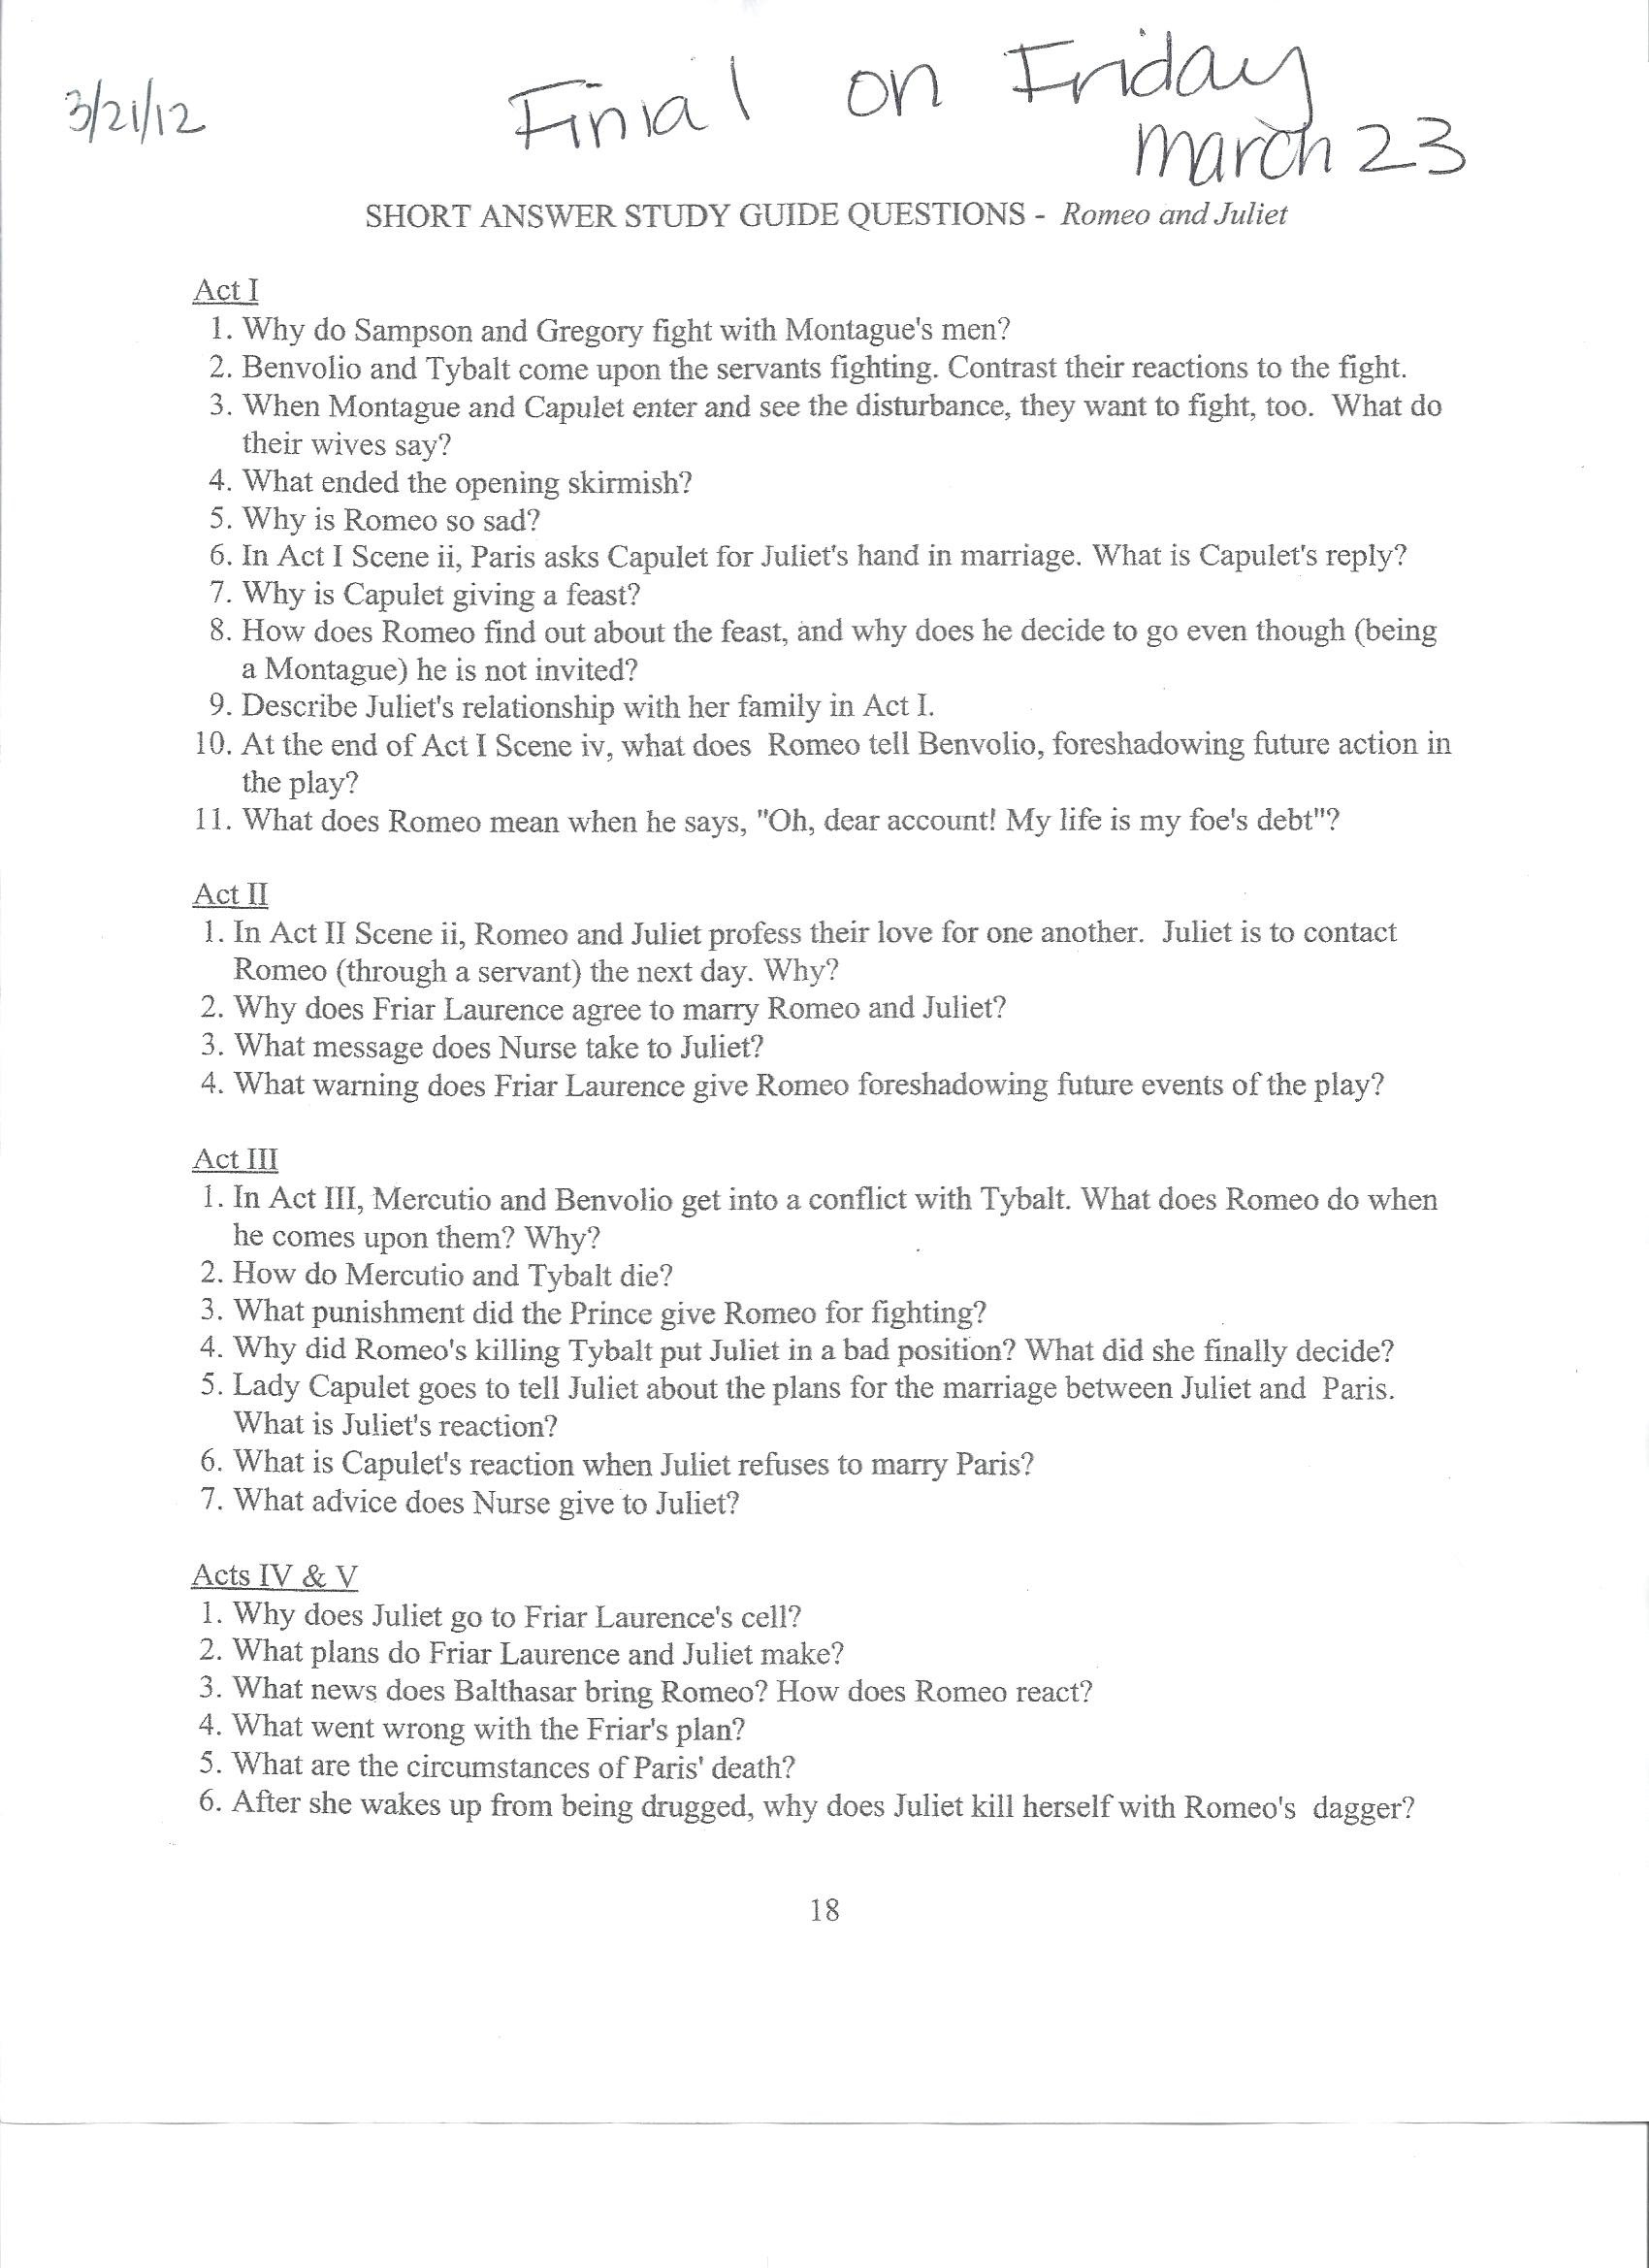 romeo and juliet essay test Cambridge school shakespeare romeo and juliet essay plans king richard iii performing the play romeo and juliet making sense of the play test yourself romeo and juliet please register to access these materials.